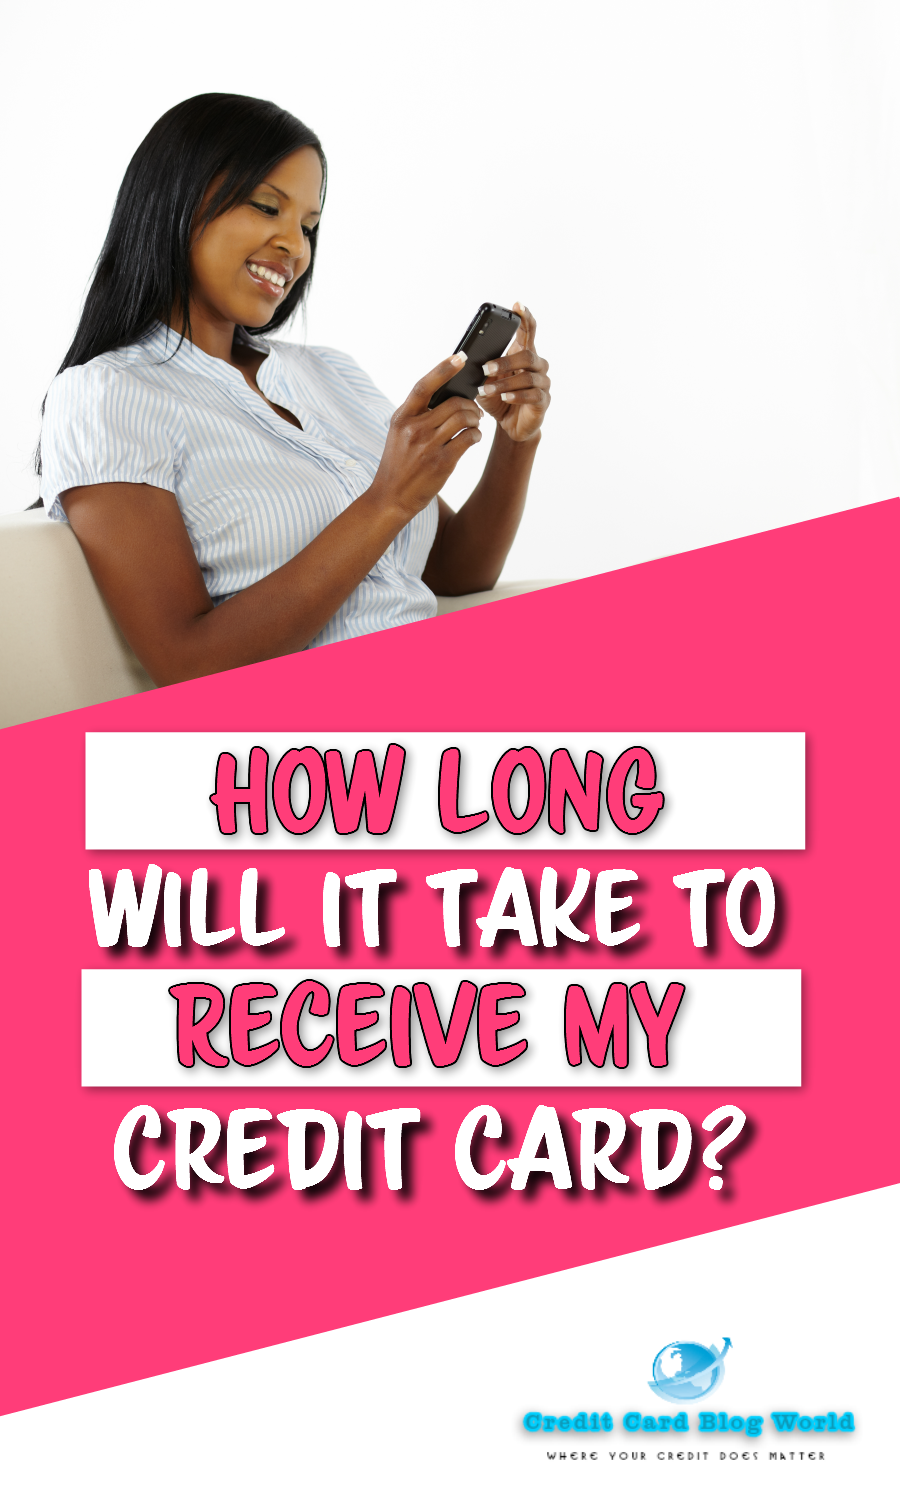 How Long Will it Take To Receive My Credit Card